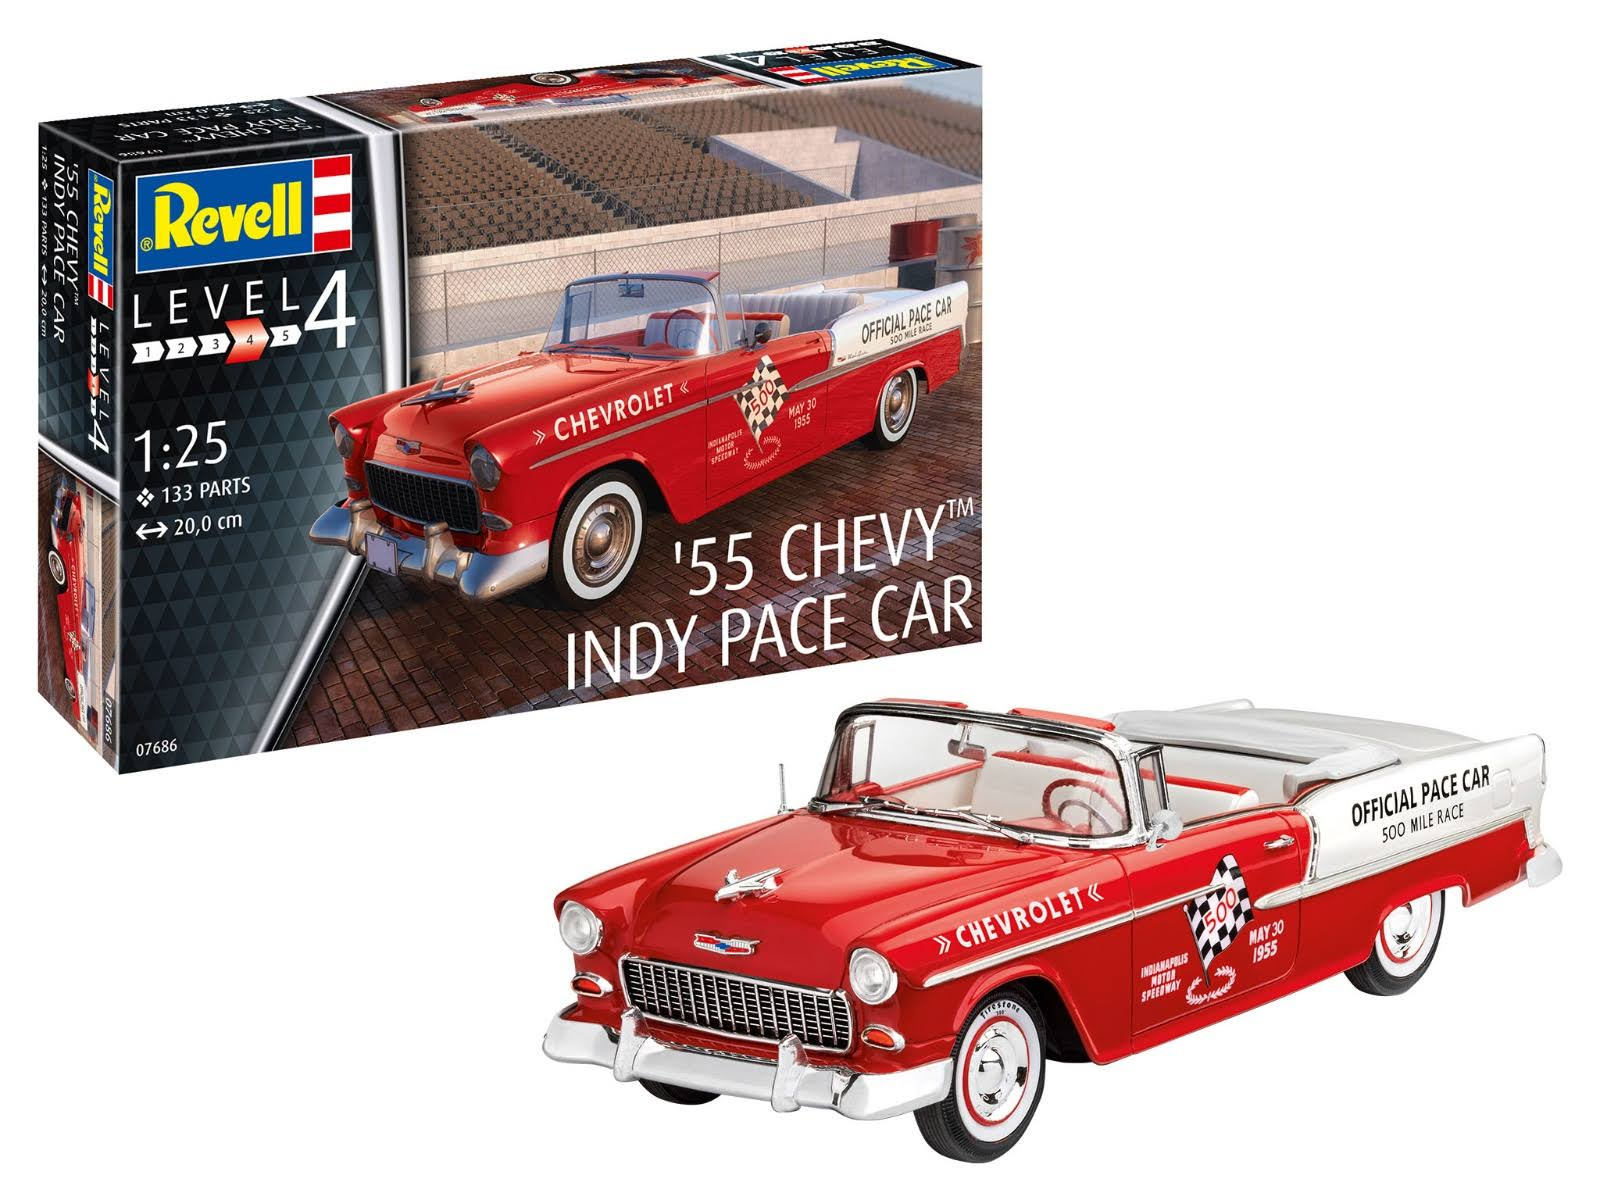 Revell 07686 1955 Chevy Indy Pace Car Model Kit - Scale 1:25